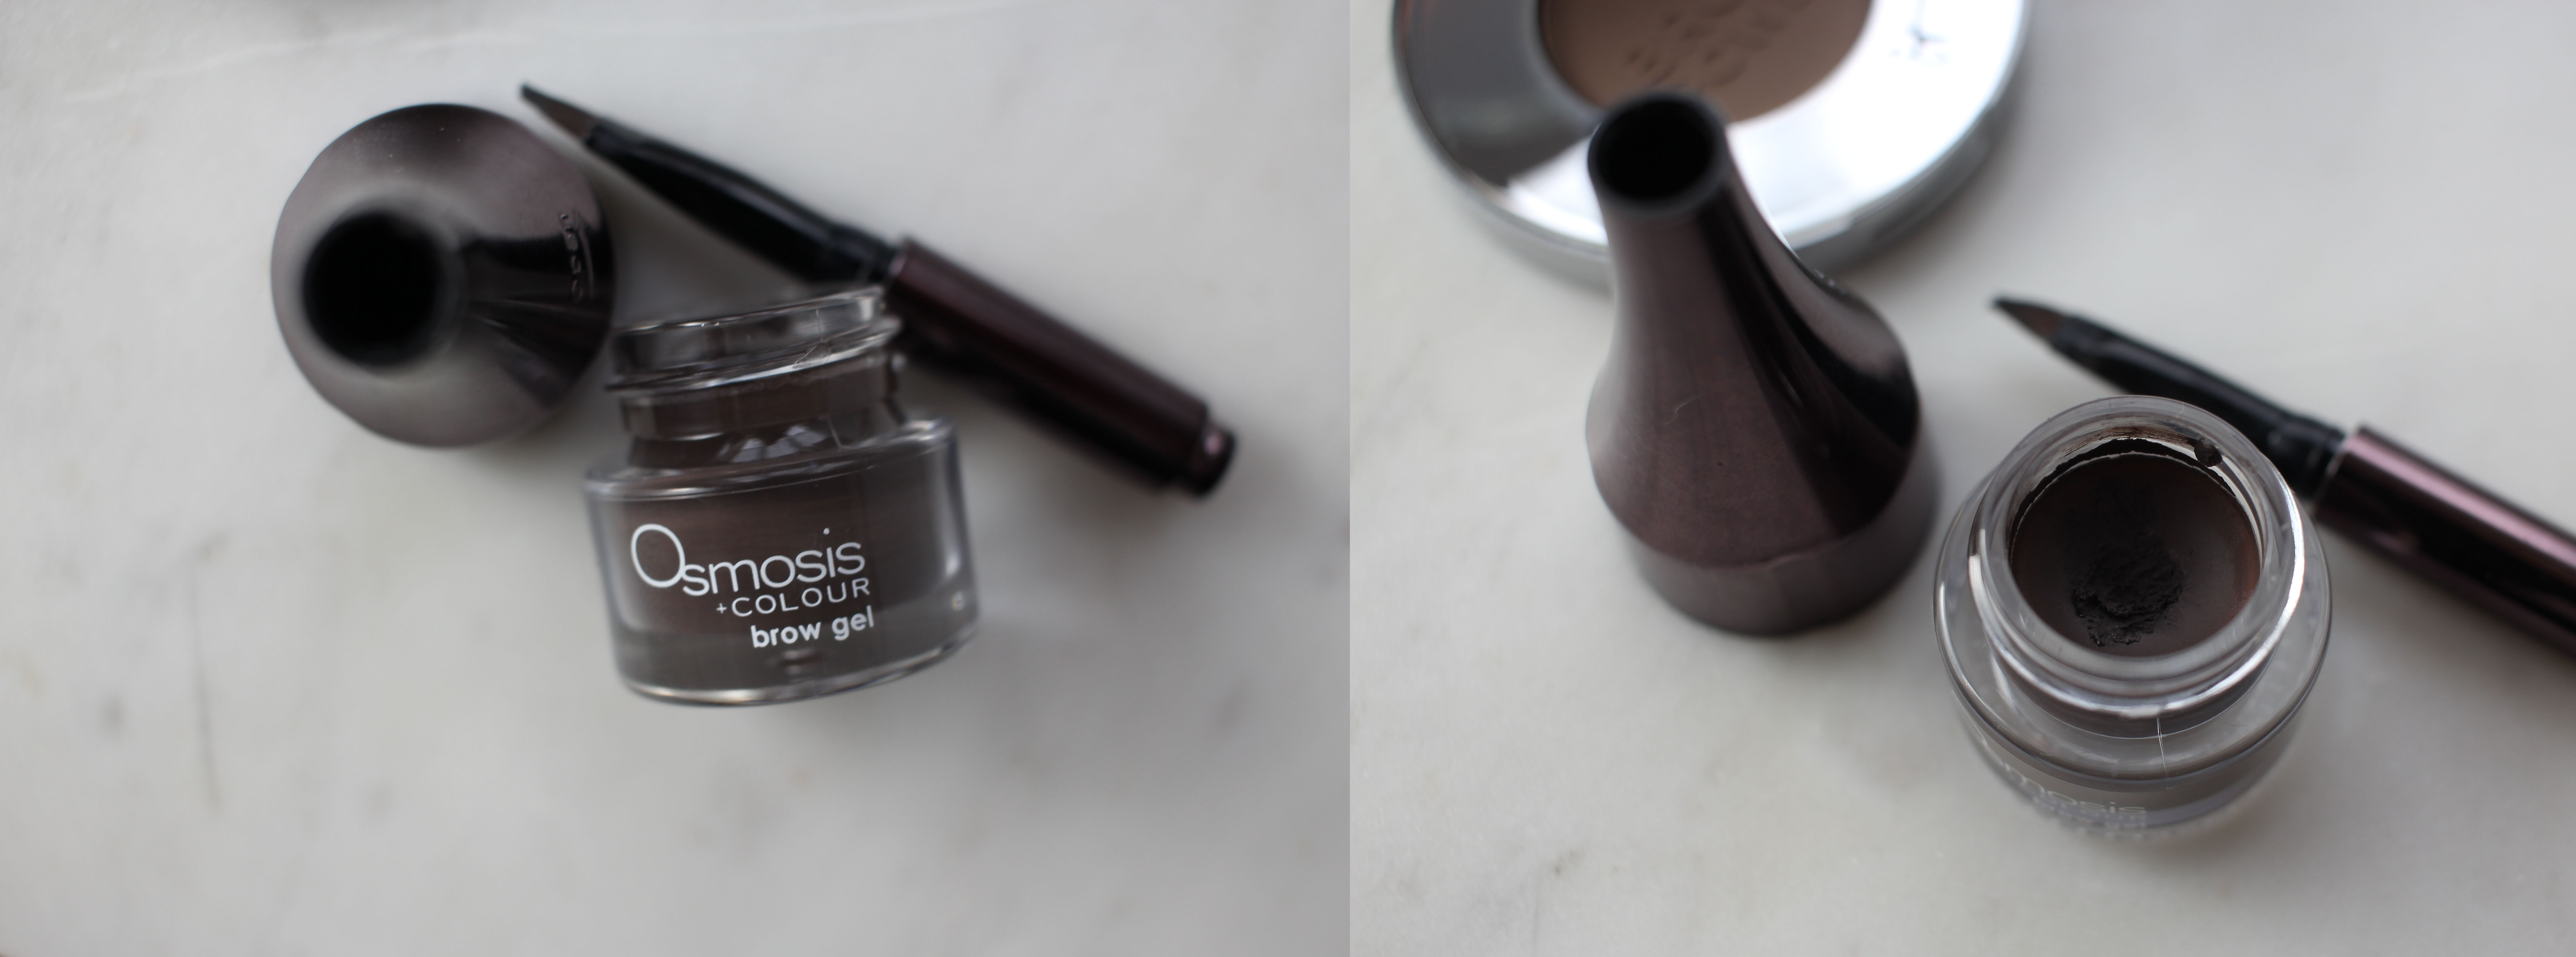 Products for Sparse Eyebrows- Hits & Misses